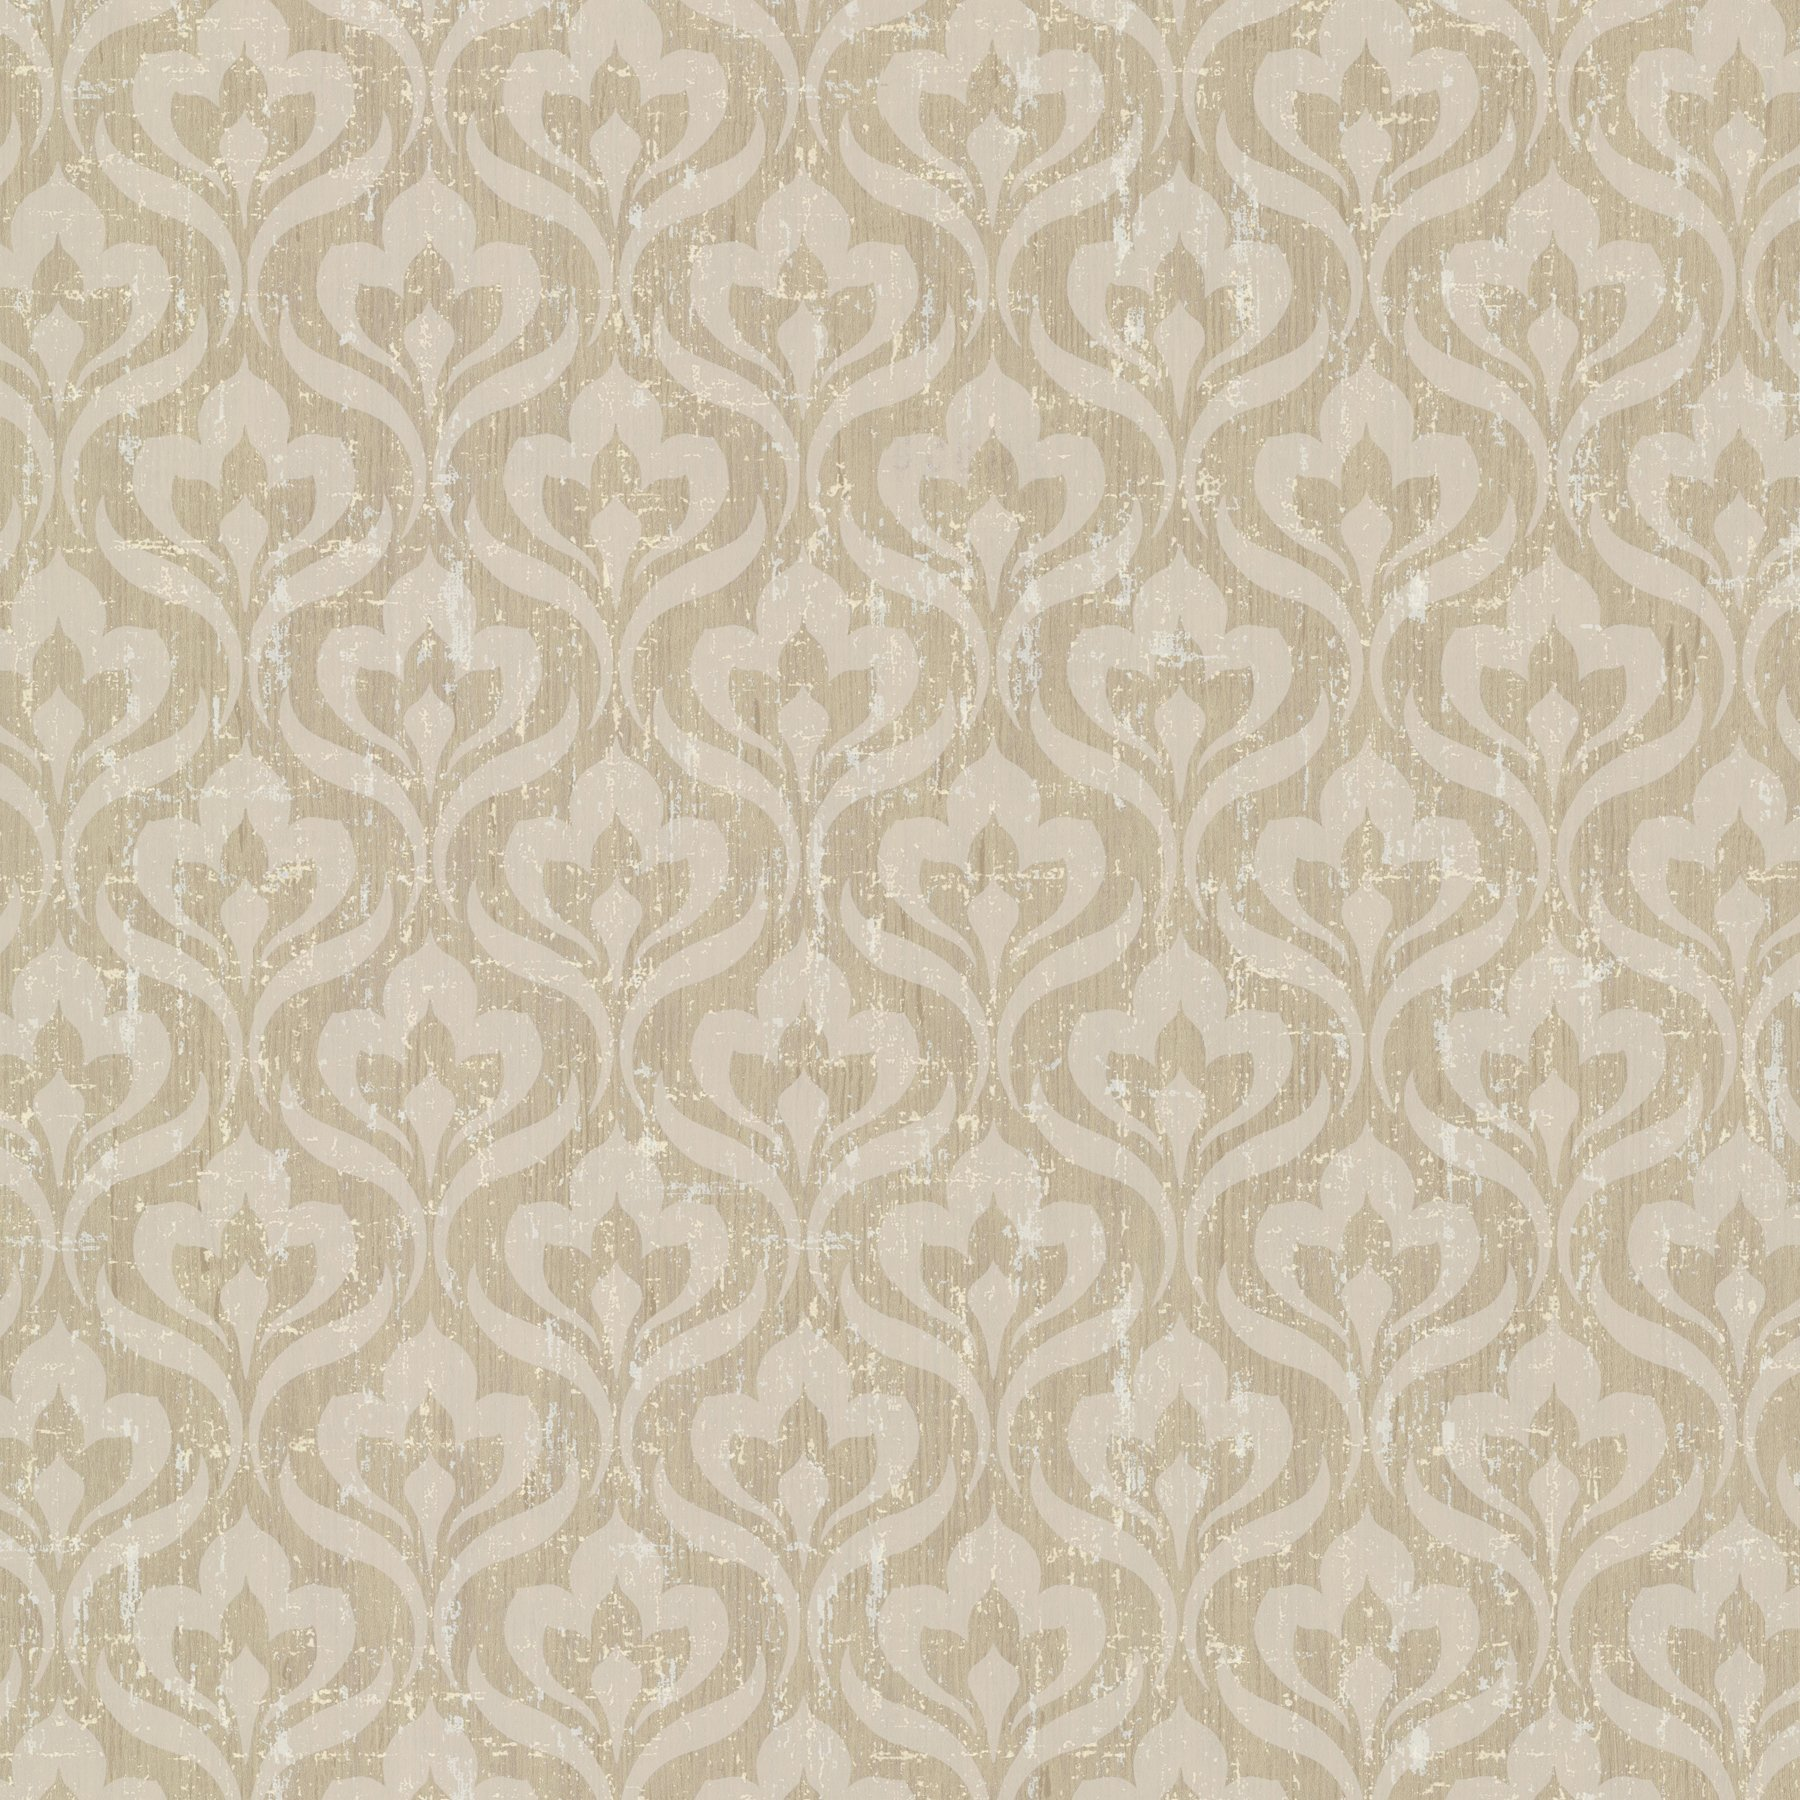 Kenneth James 672-20059 Toscana Peacock Ogee Wallpaper, Bronze by Kenneth James